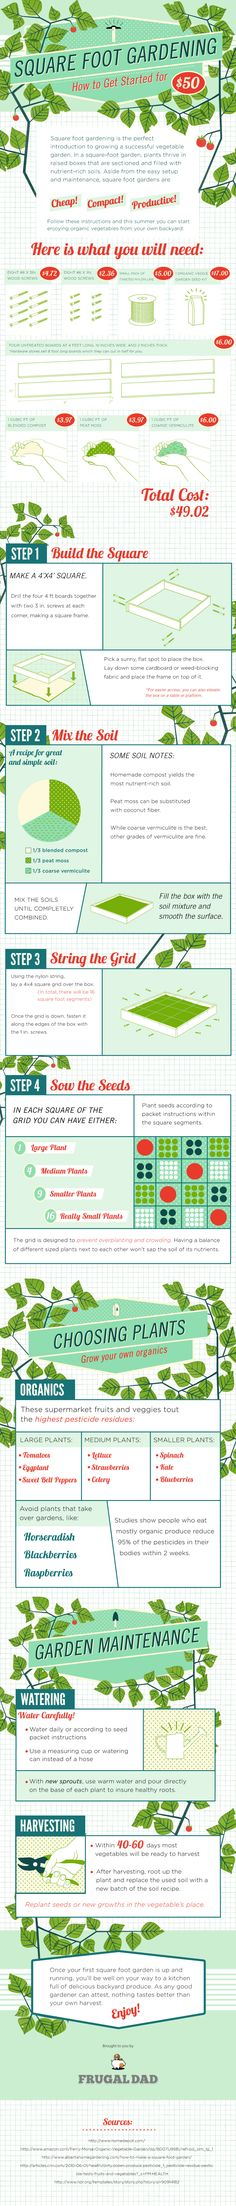 Square Foot Gardening: How to Get Started for 50 bucks